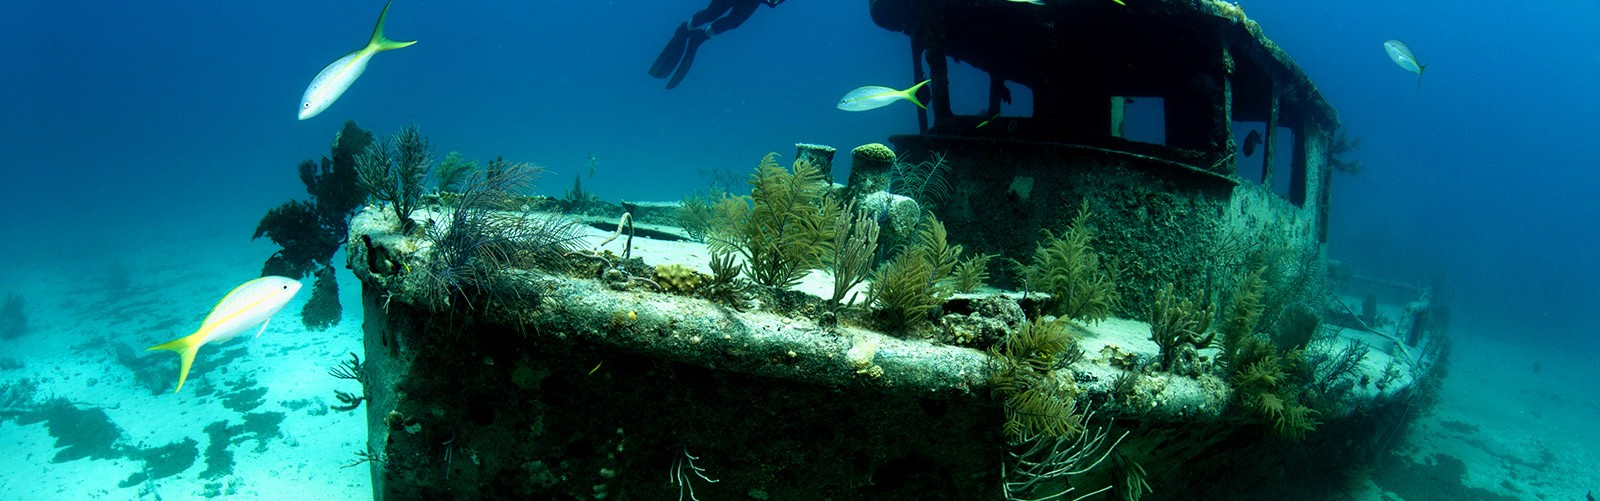 Sunken ship with divers on Grand Bahama Island